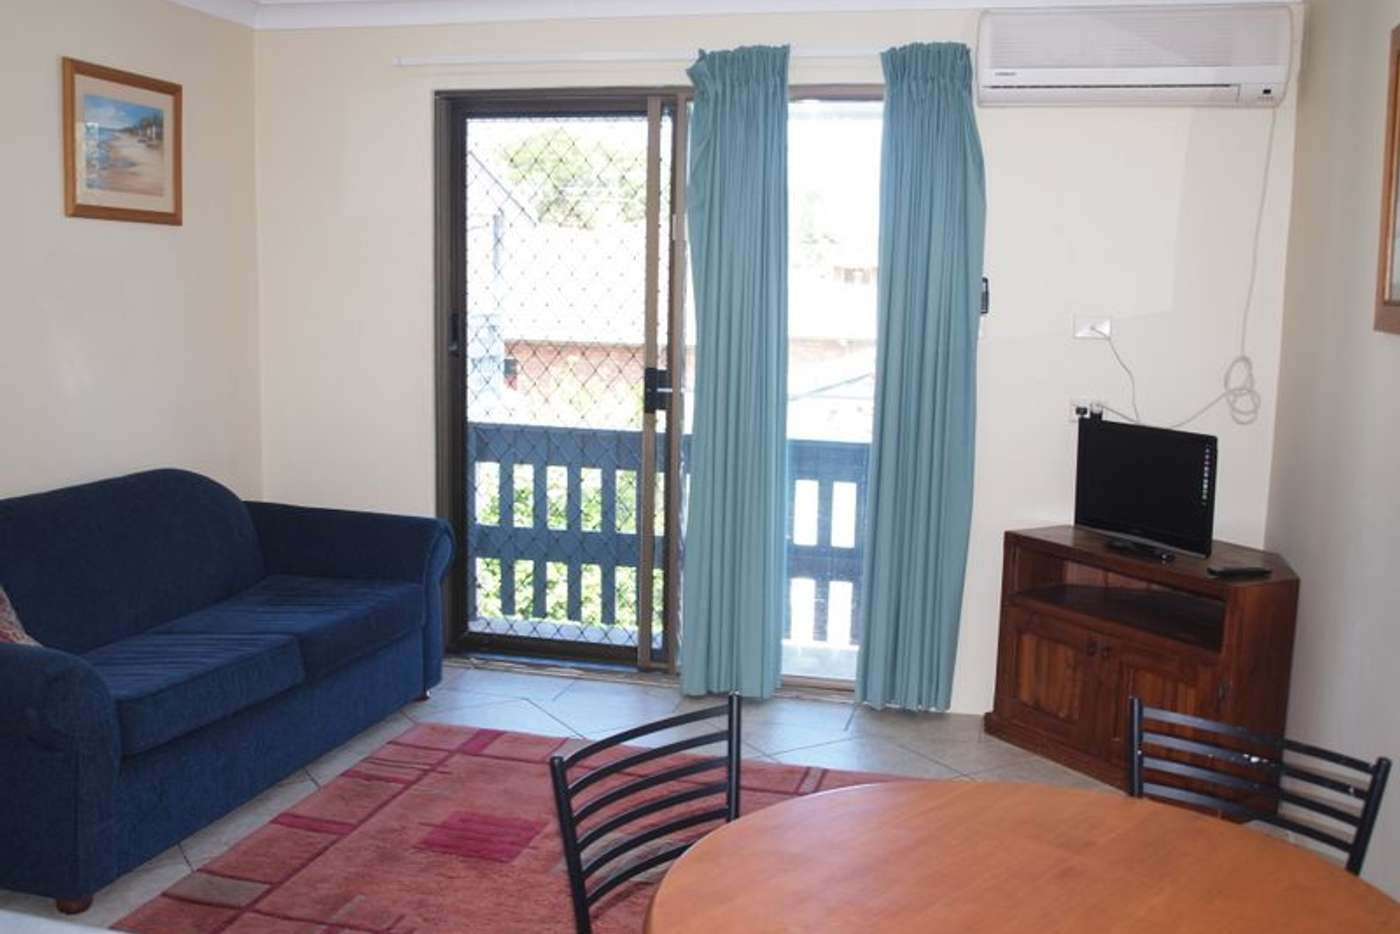 Sixth view of Homely unit listing, 7/4 Spenser Street, Iluka NSW 2466